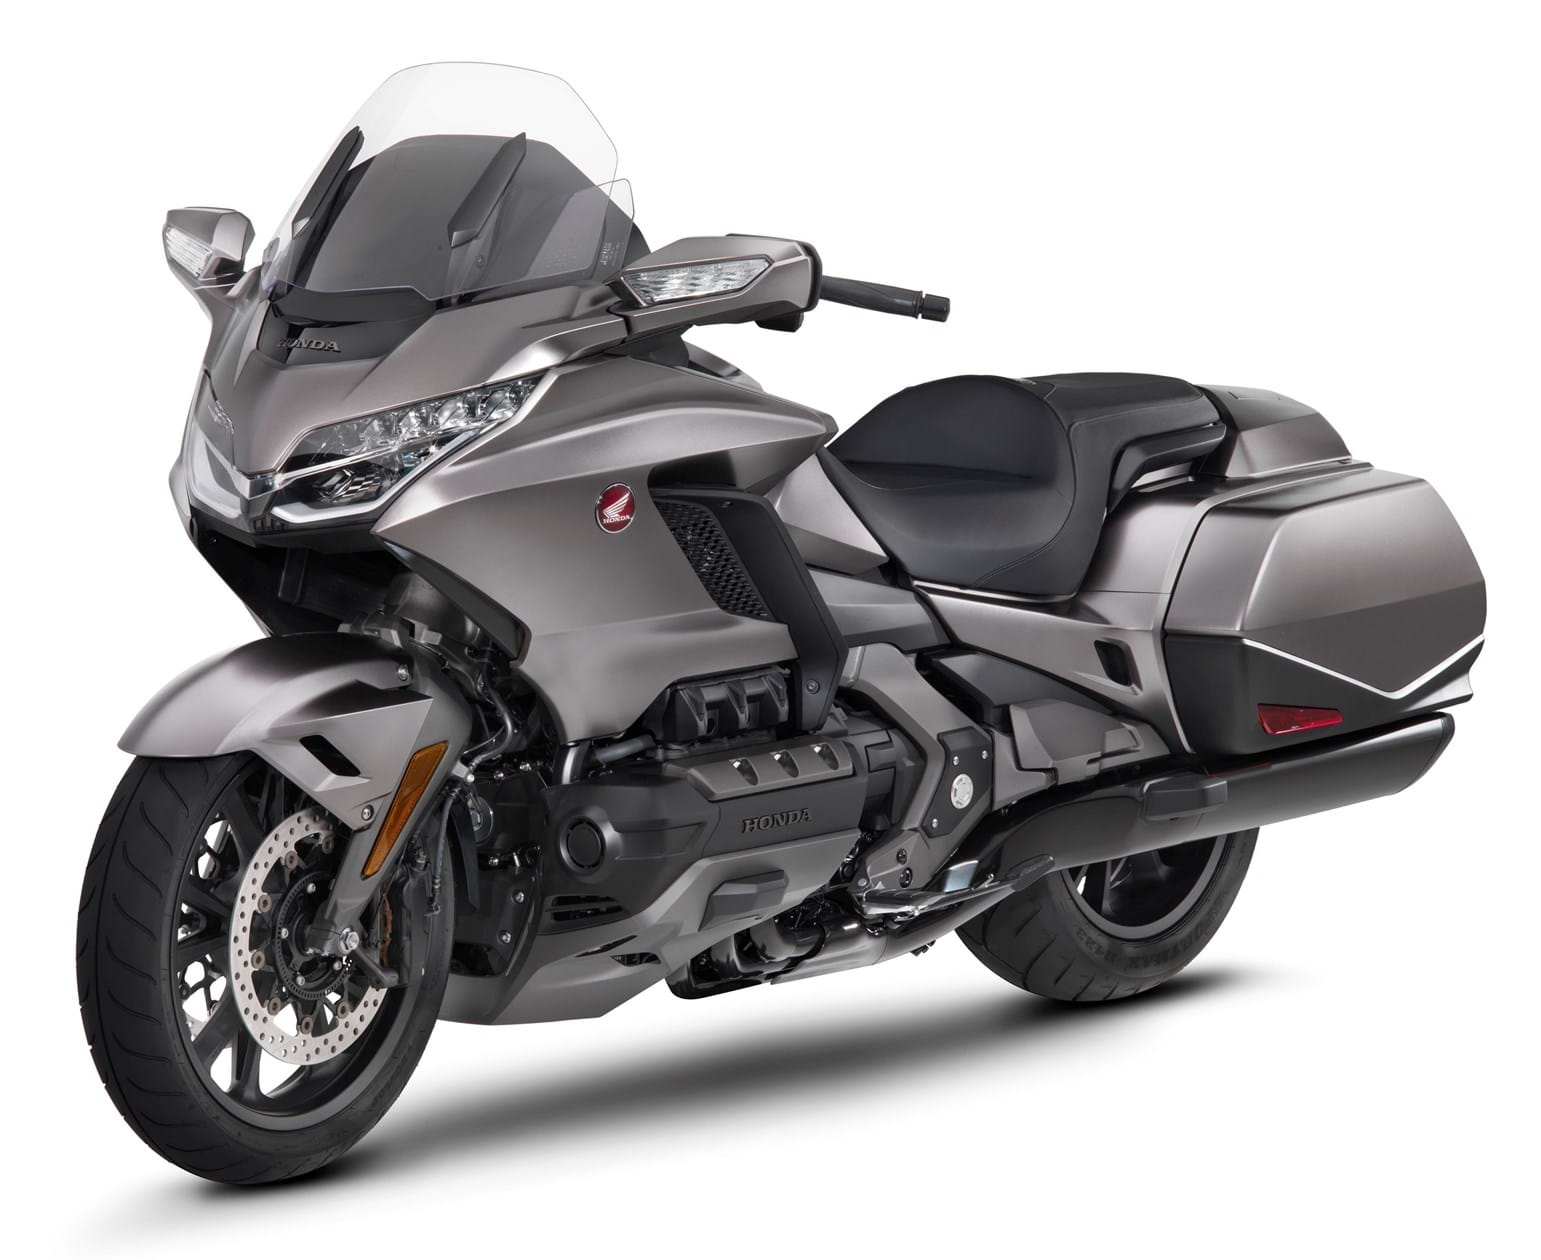 The Honda Goldwing GL1800 Is A Large Fully Featured Touring Bike With Shaft Drive And Powered By Flat Six Engine Which Produces 125bhp